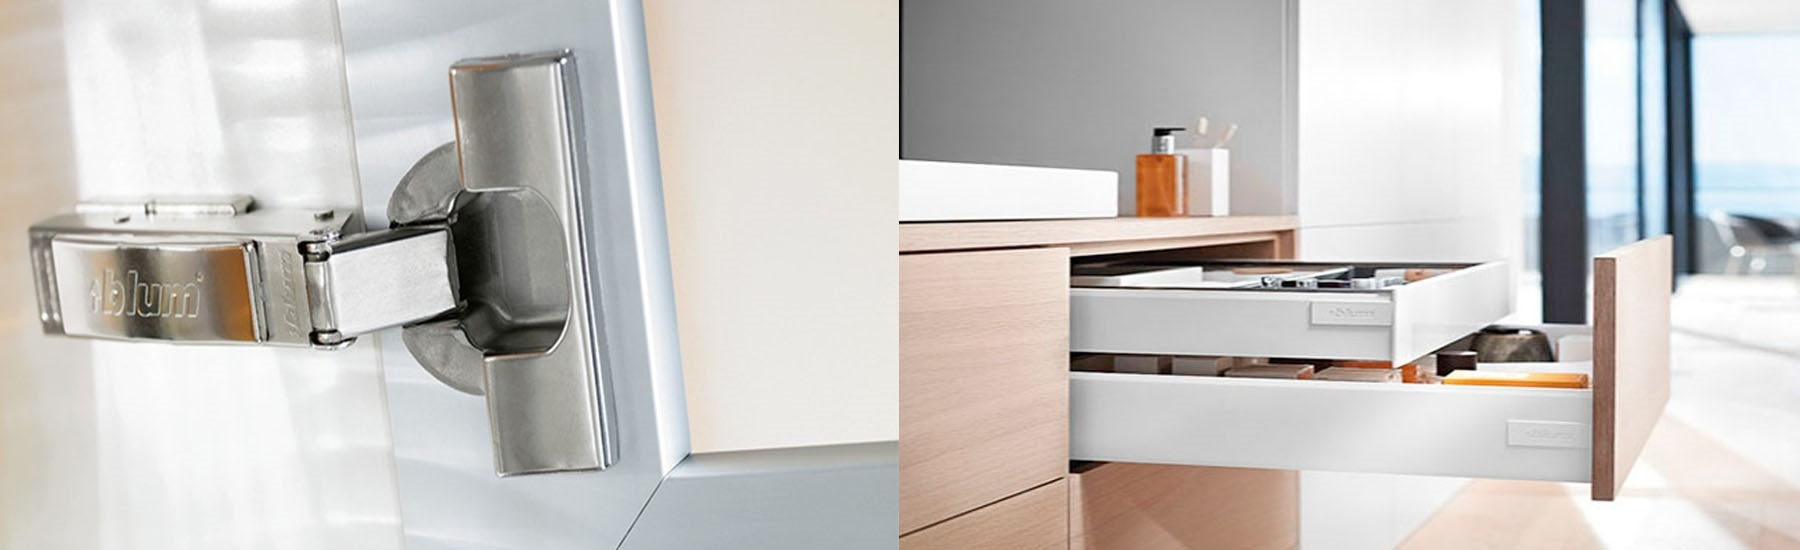 hinges-and-drawer-boxes